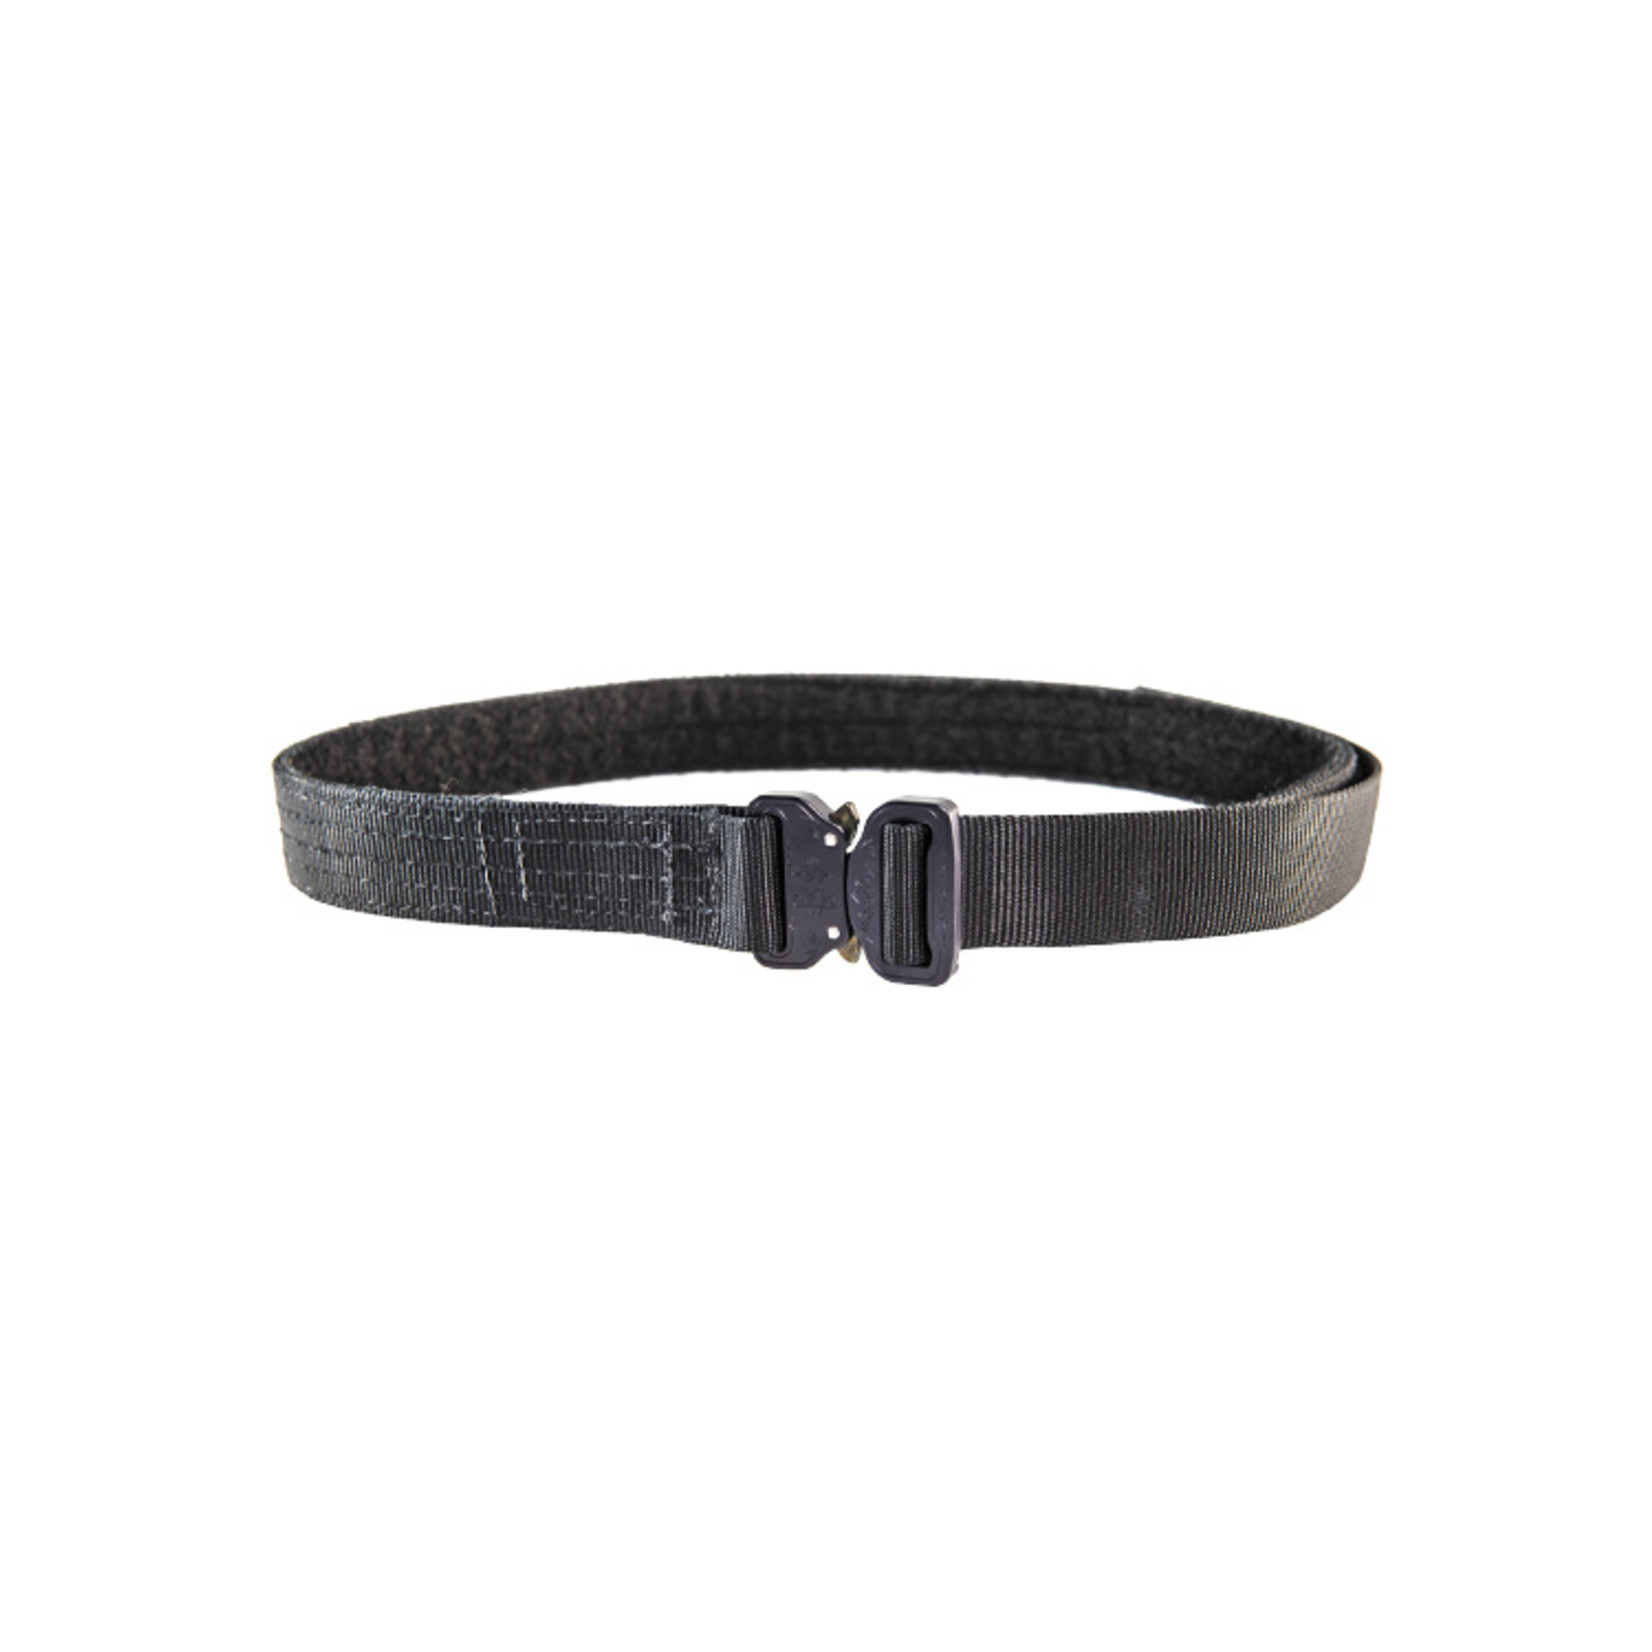 "HIGH SPEED GEAR COBRA 1.5"" RIGGER BELT WITH INTERIOR VELCRO"